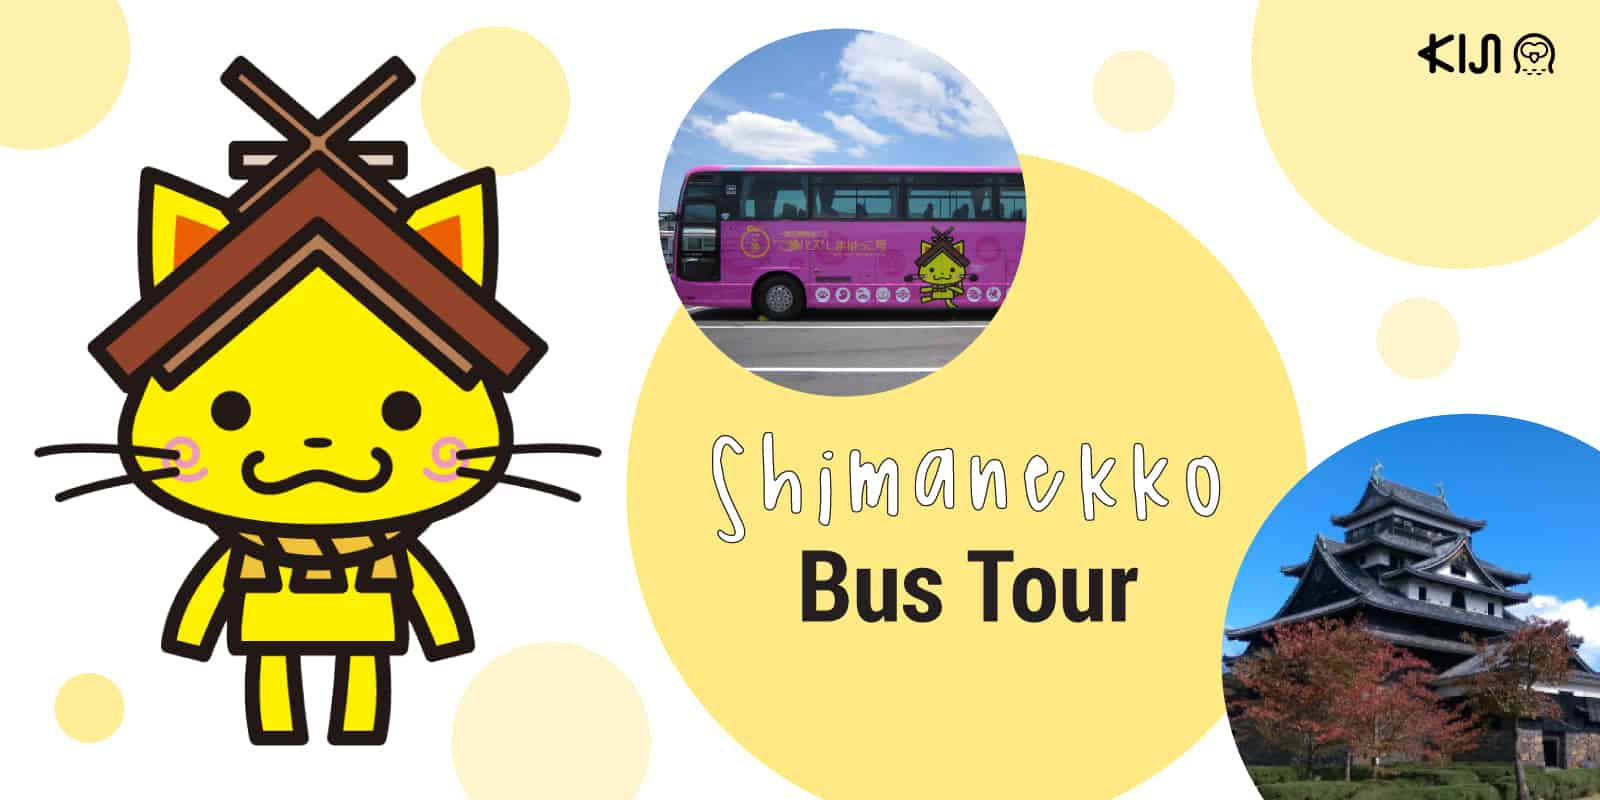 Shimanekko Bus Tour